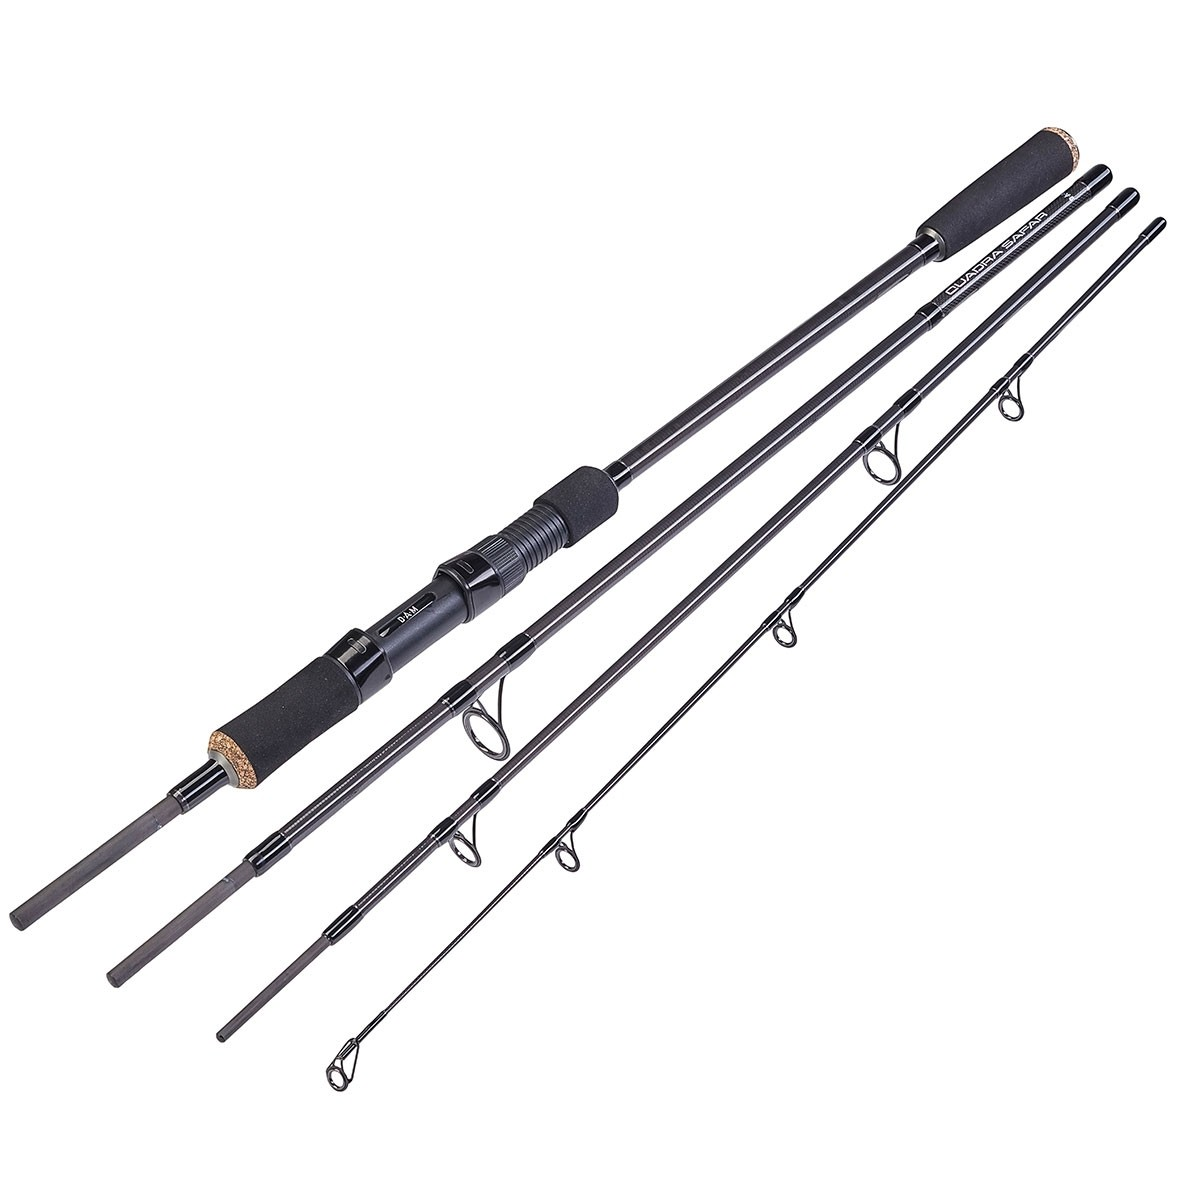 with its quality responsive blank the  Dam Quadra Safar travel spinning rod is the ideal travelling companion for that Big Game fishing trip